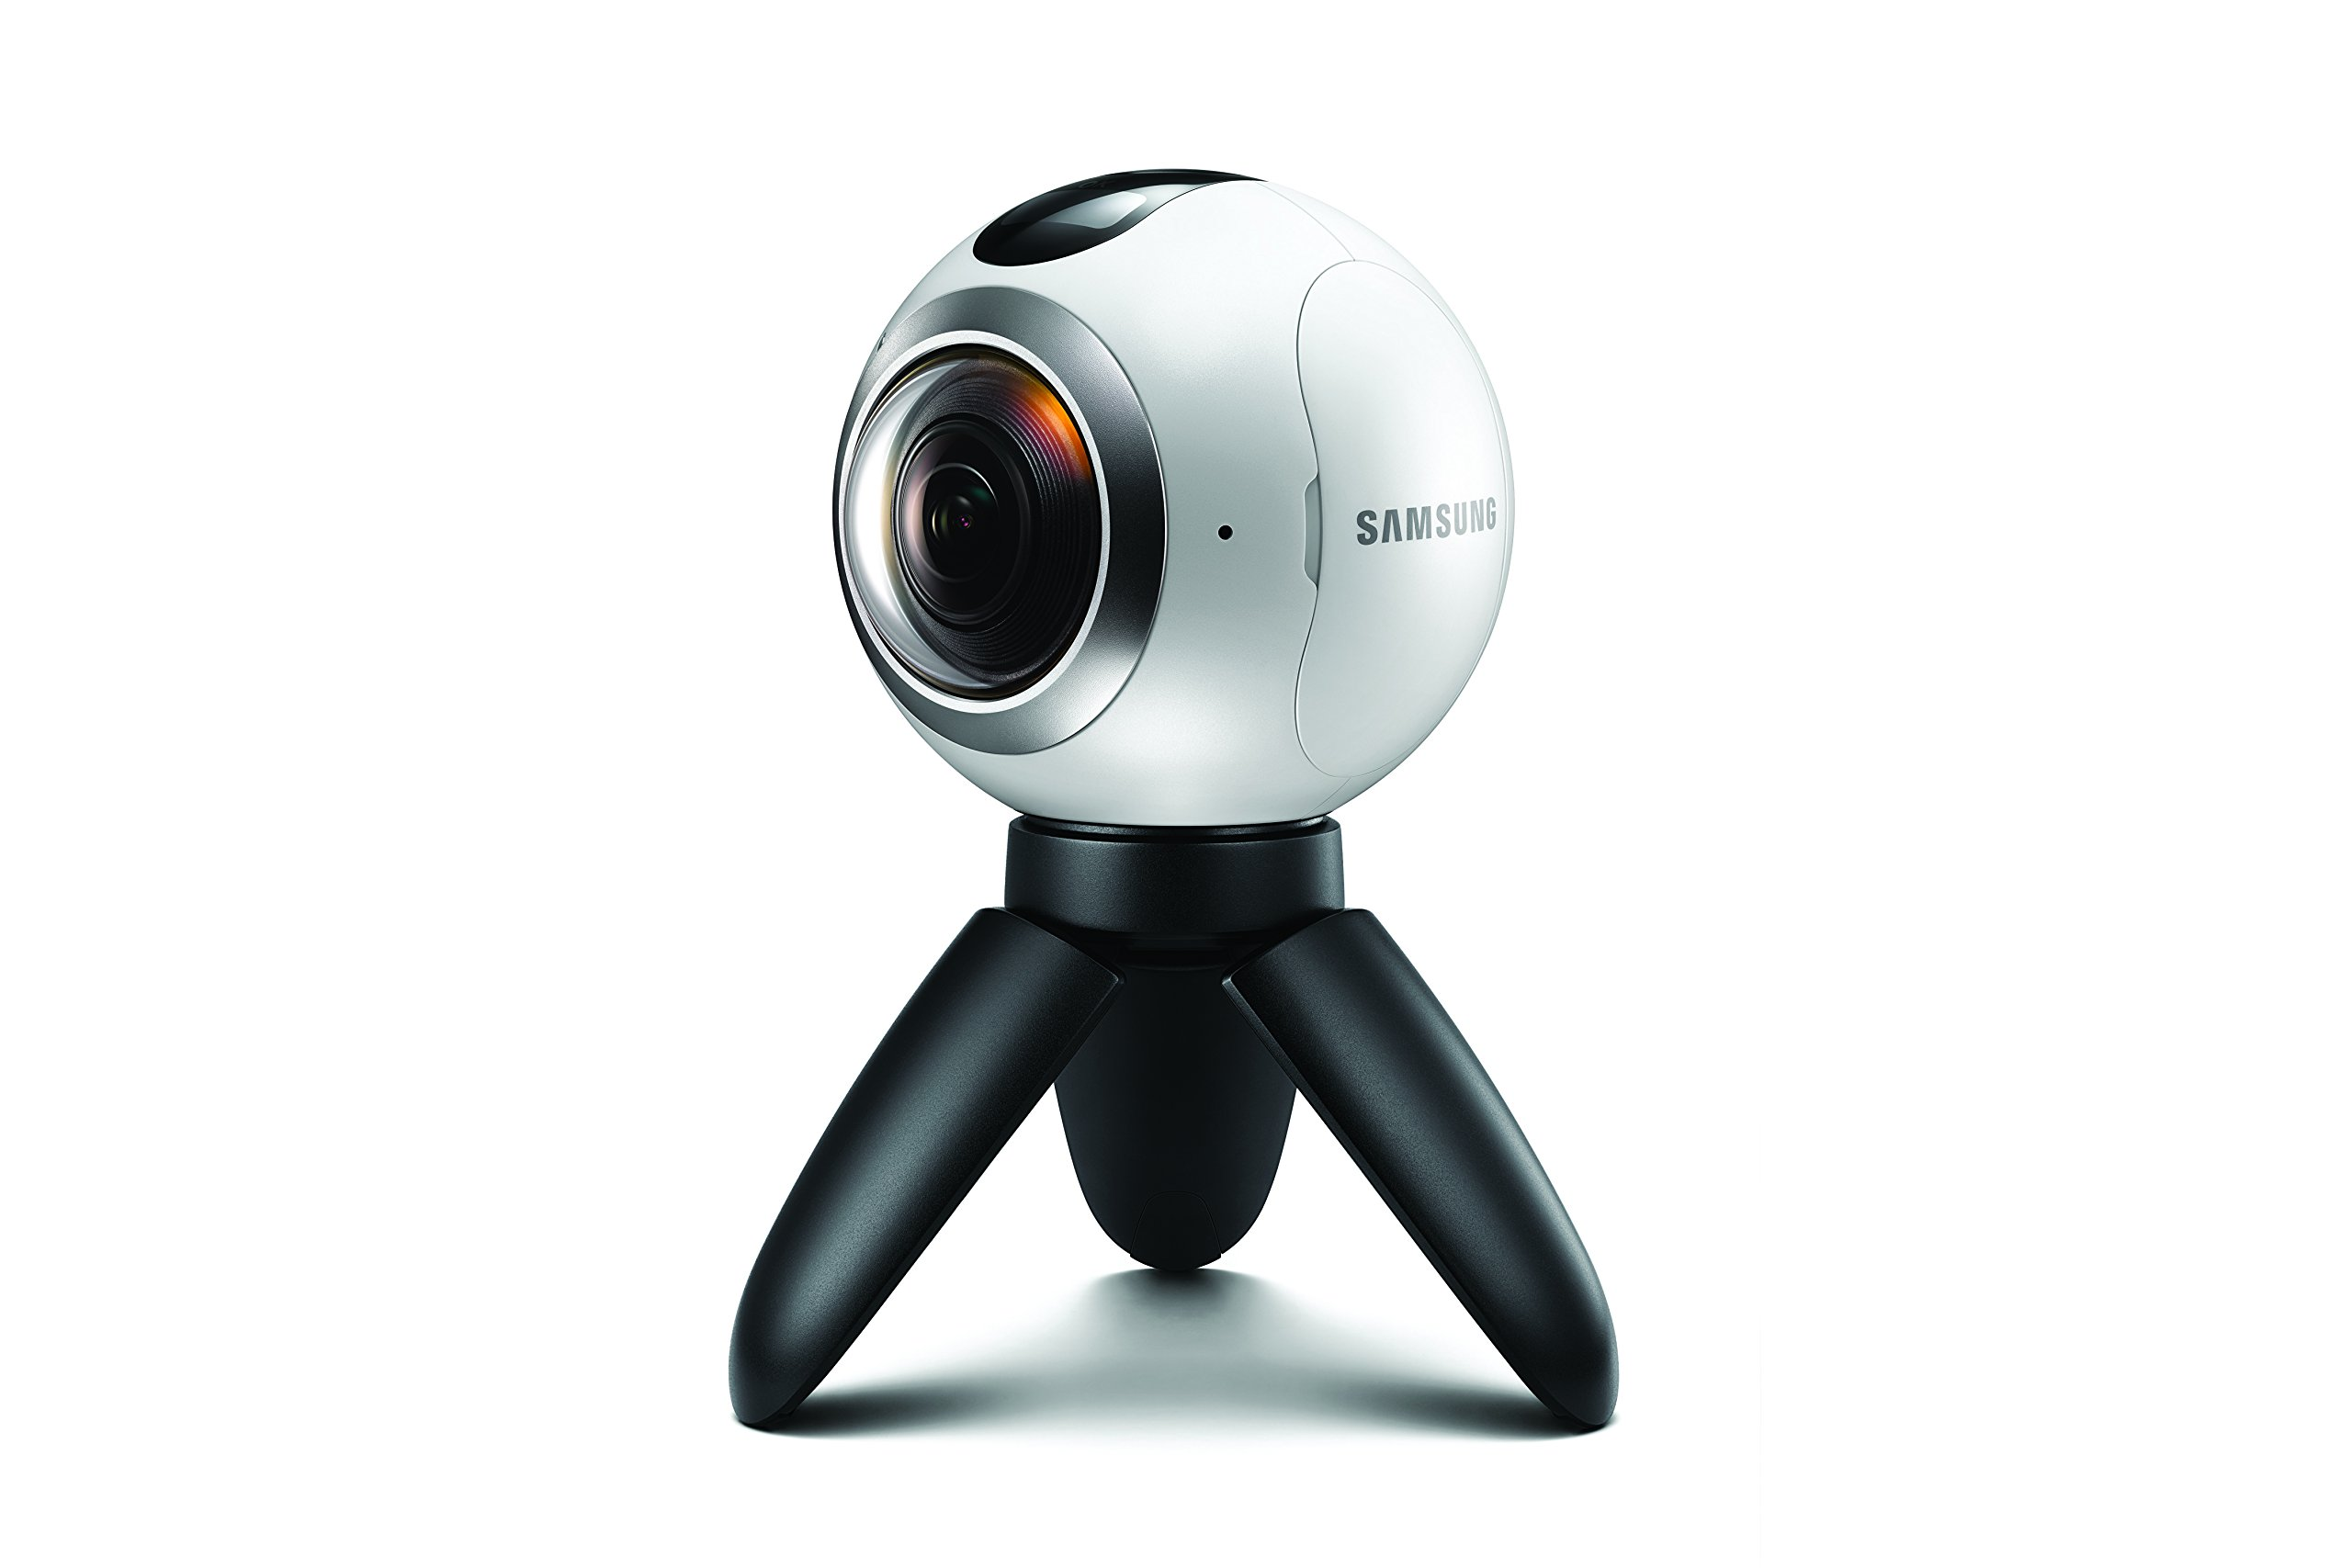 Samsung Gear 360 Real 360° High Resolution VR Camera (US Version with Warranty) by Samsung